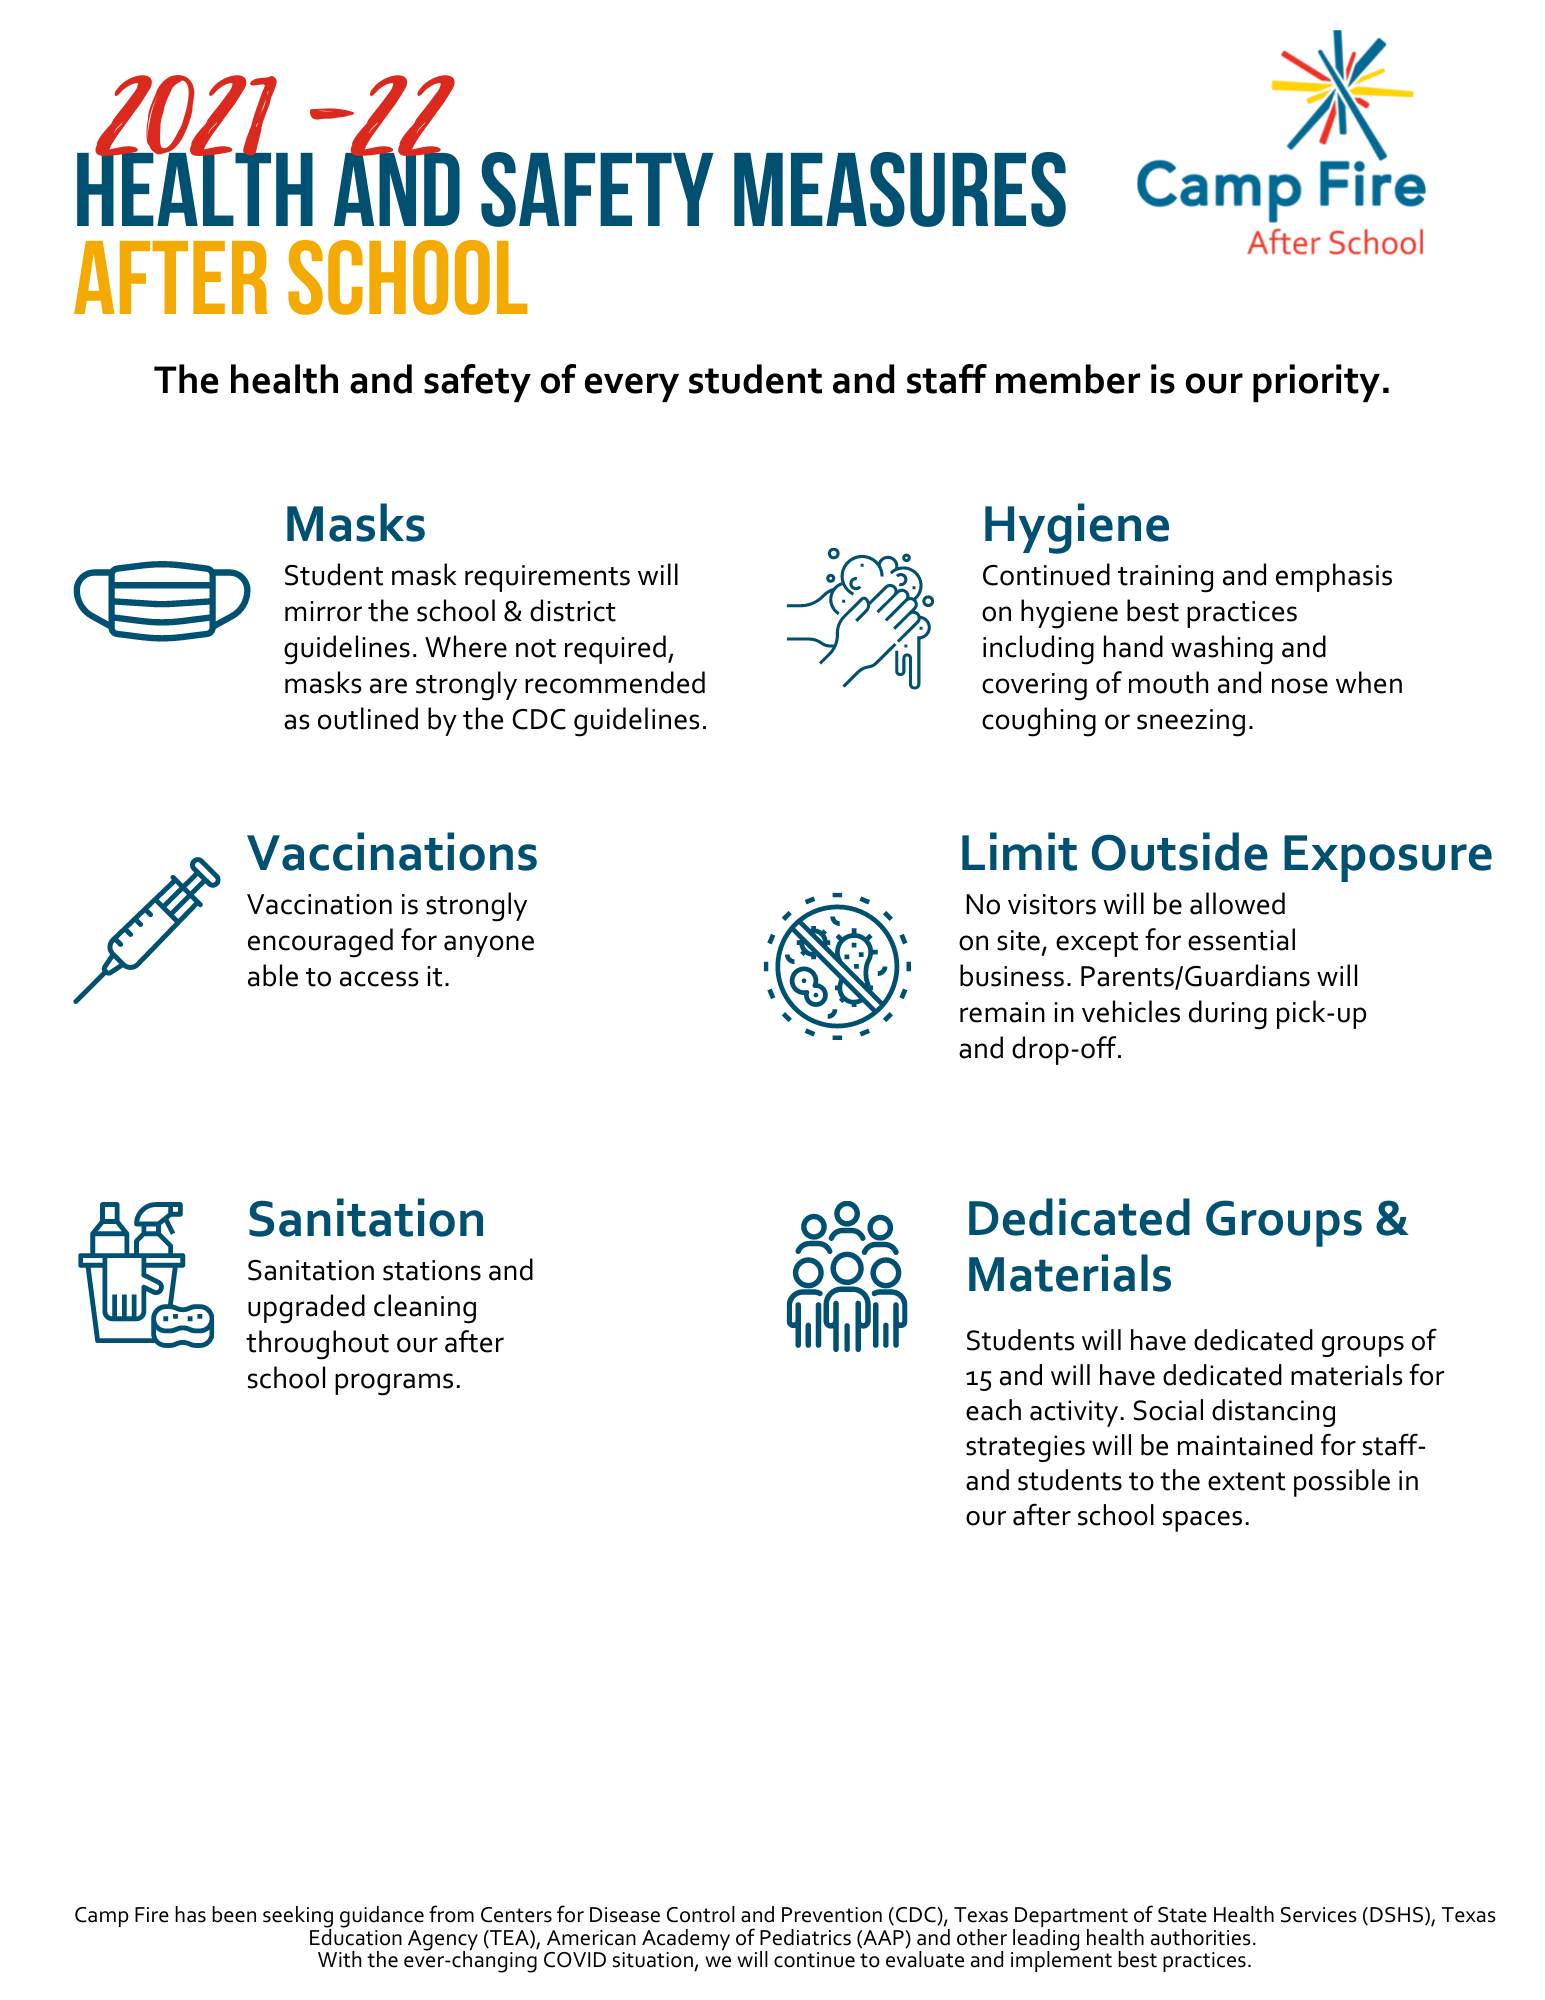 After school 2021-22 health measures infographic